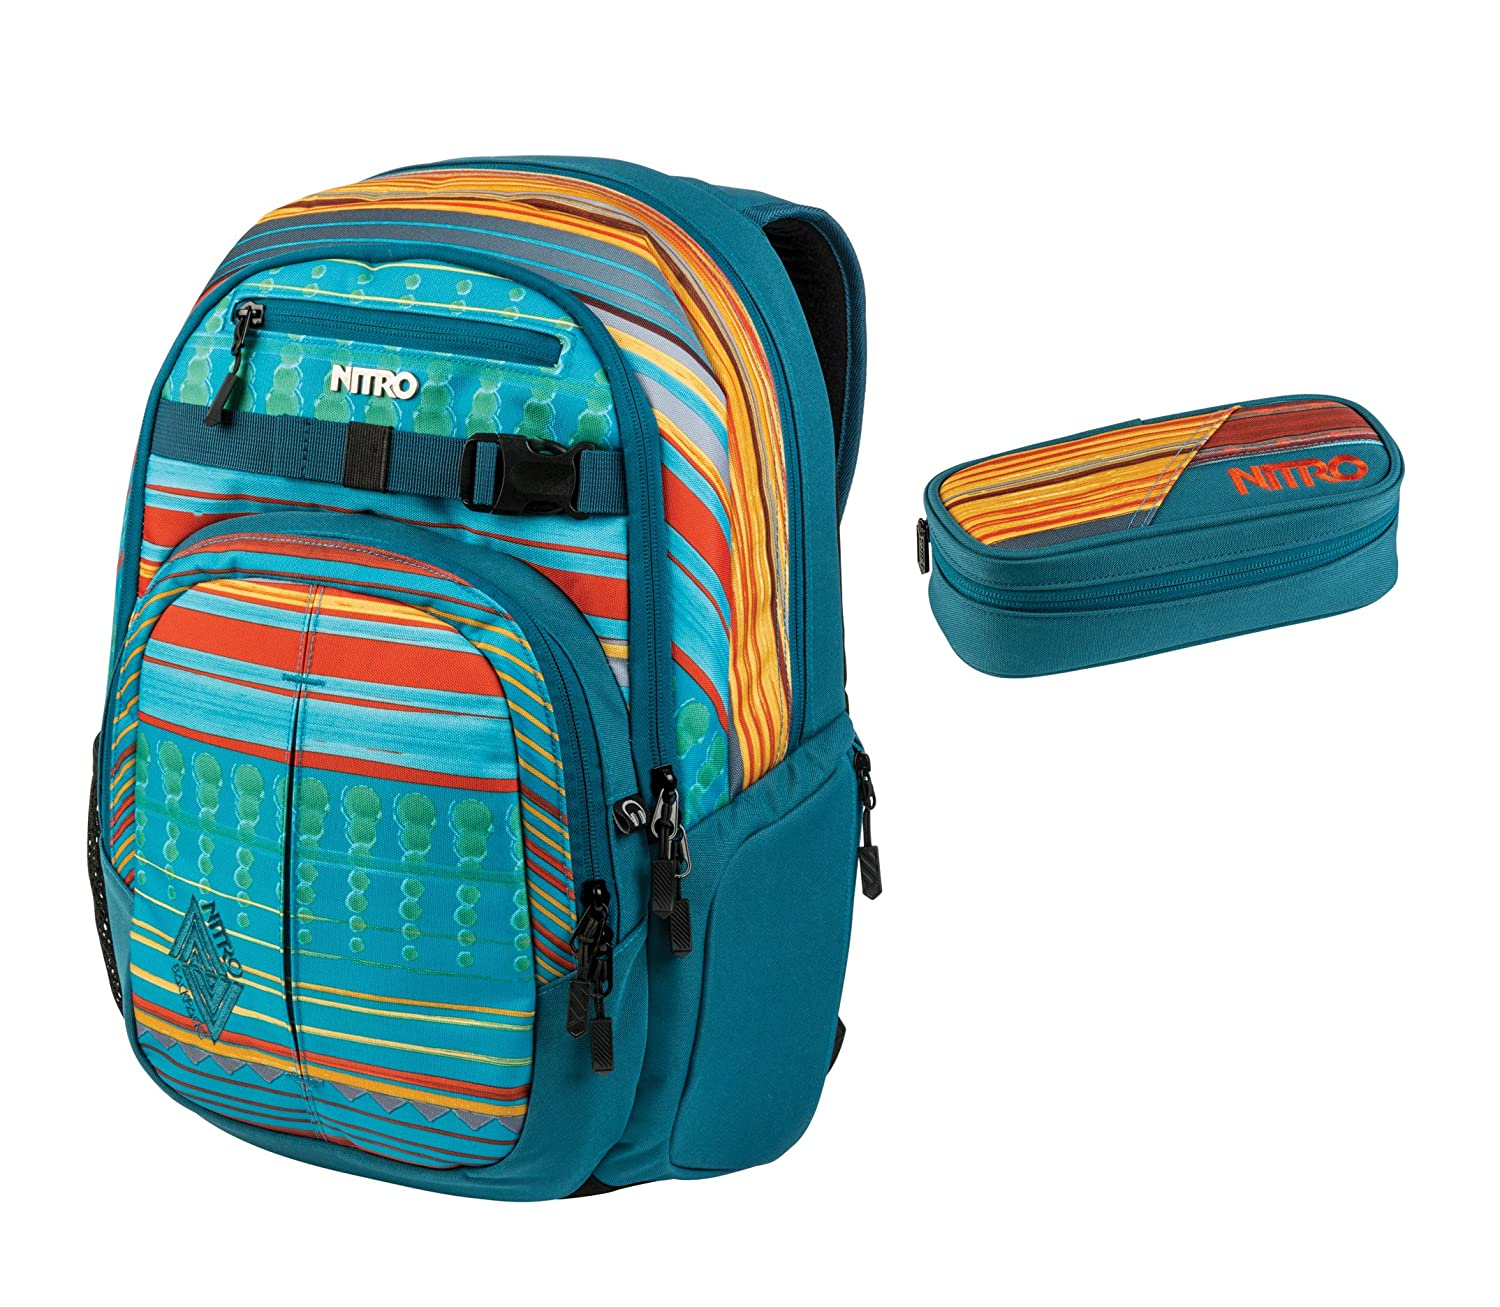 Nitro 1131878014 Schoolbag Set Blue Canyon PC   B07BN697XK